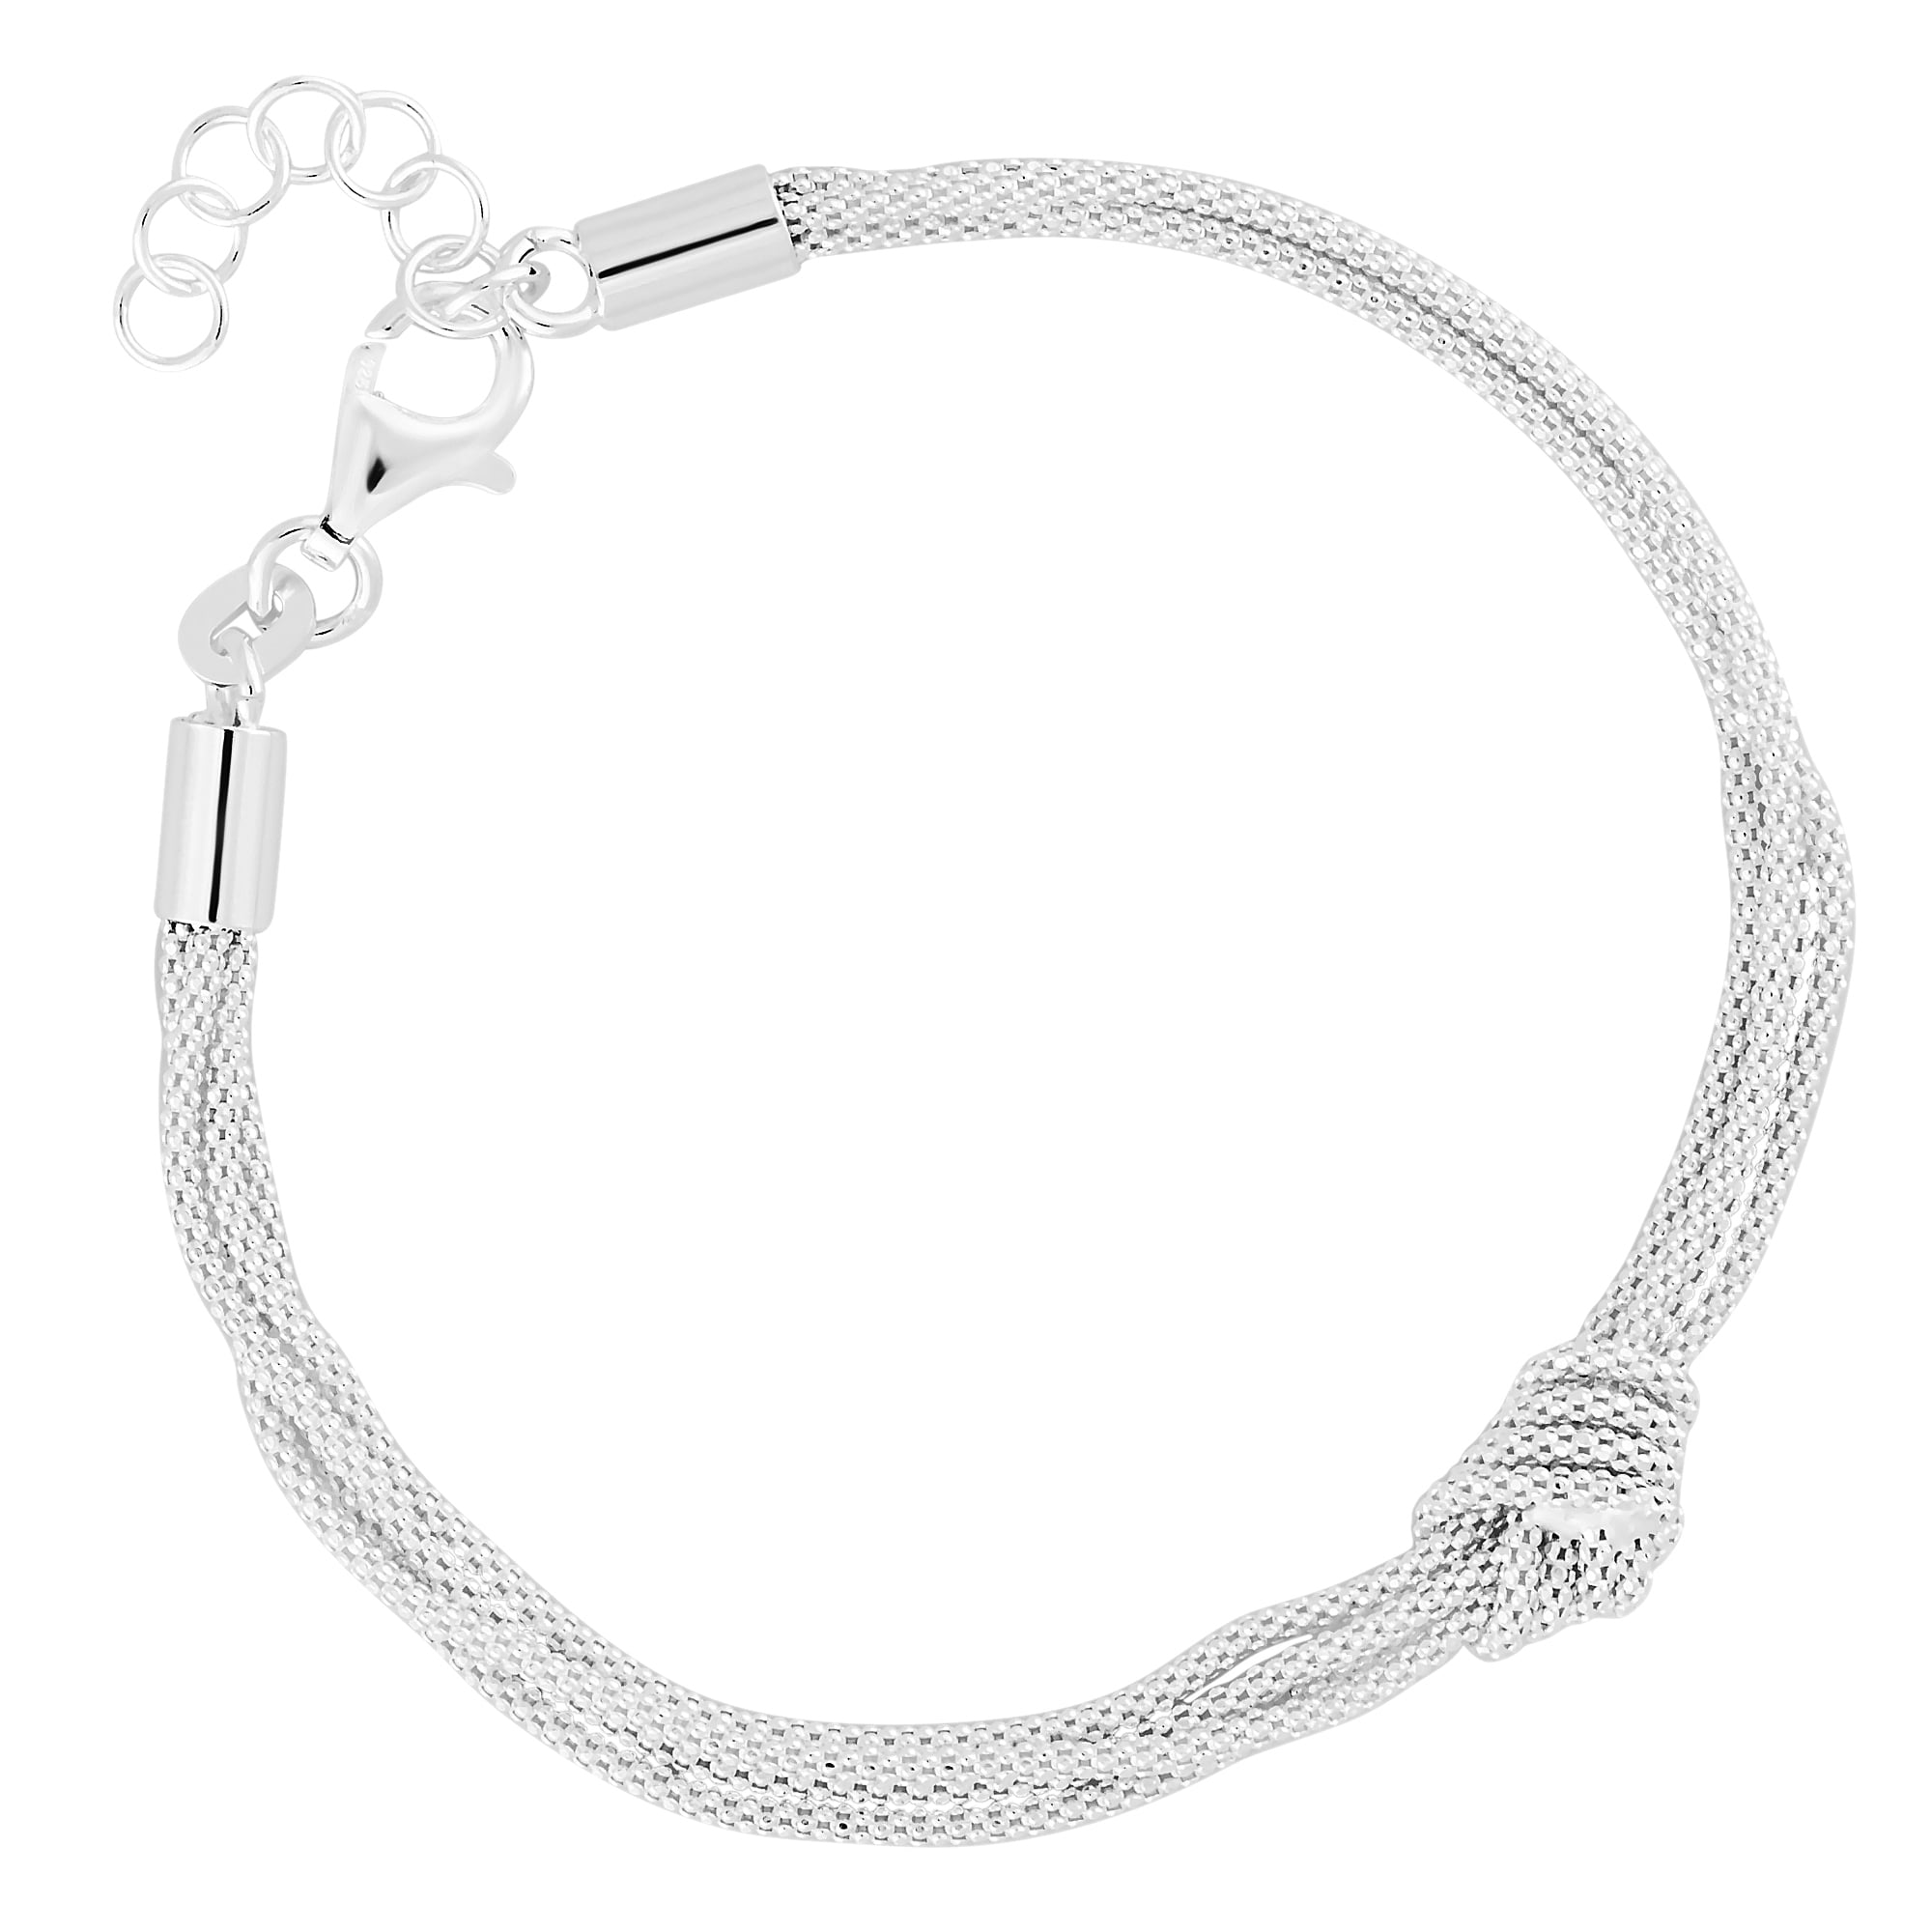 bracelets ksvhs ssa ankle anklet anklets silver bracelet sterling fancy and bear indian charms heart